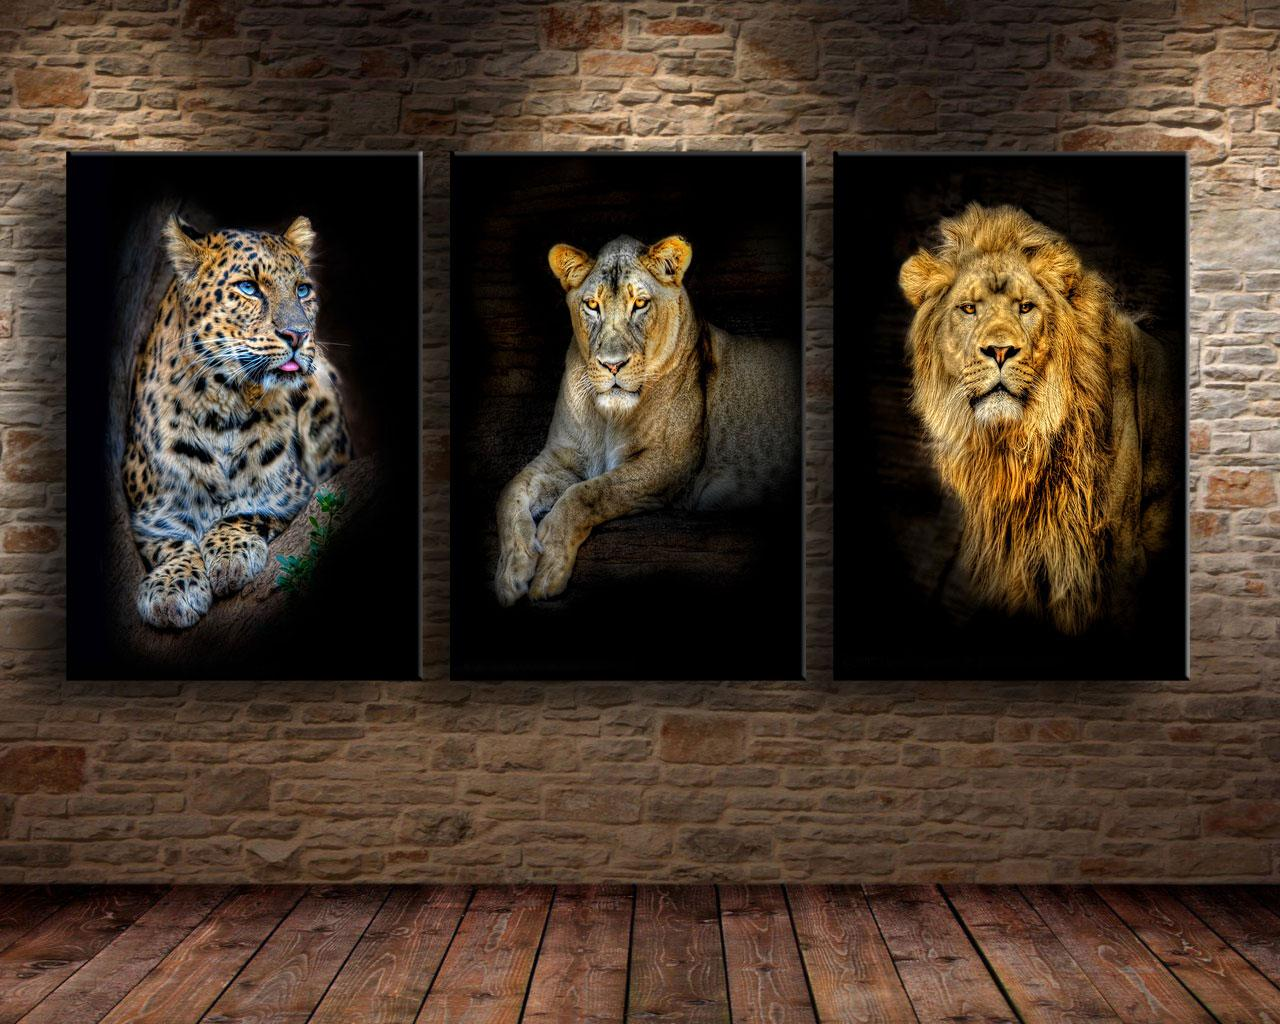 2018 Leopard Lion ,Home Decor Hd Printed Modern Art Painting On Canvas  Unframed/Framed From Q652398773, $14.53 | Dhgate.Com